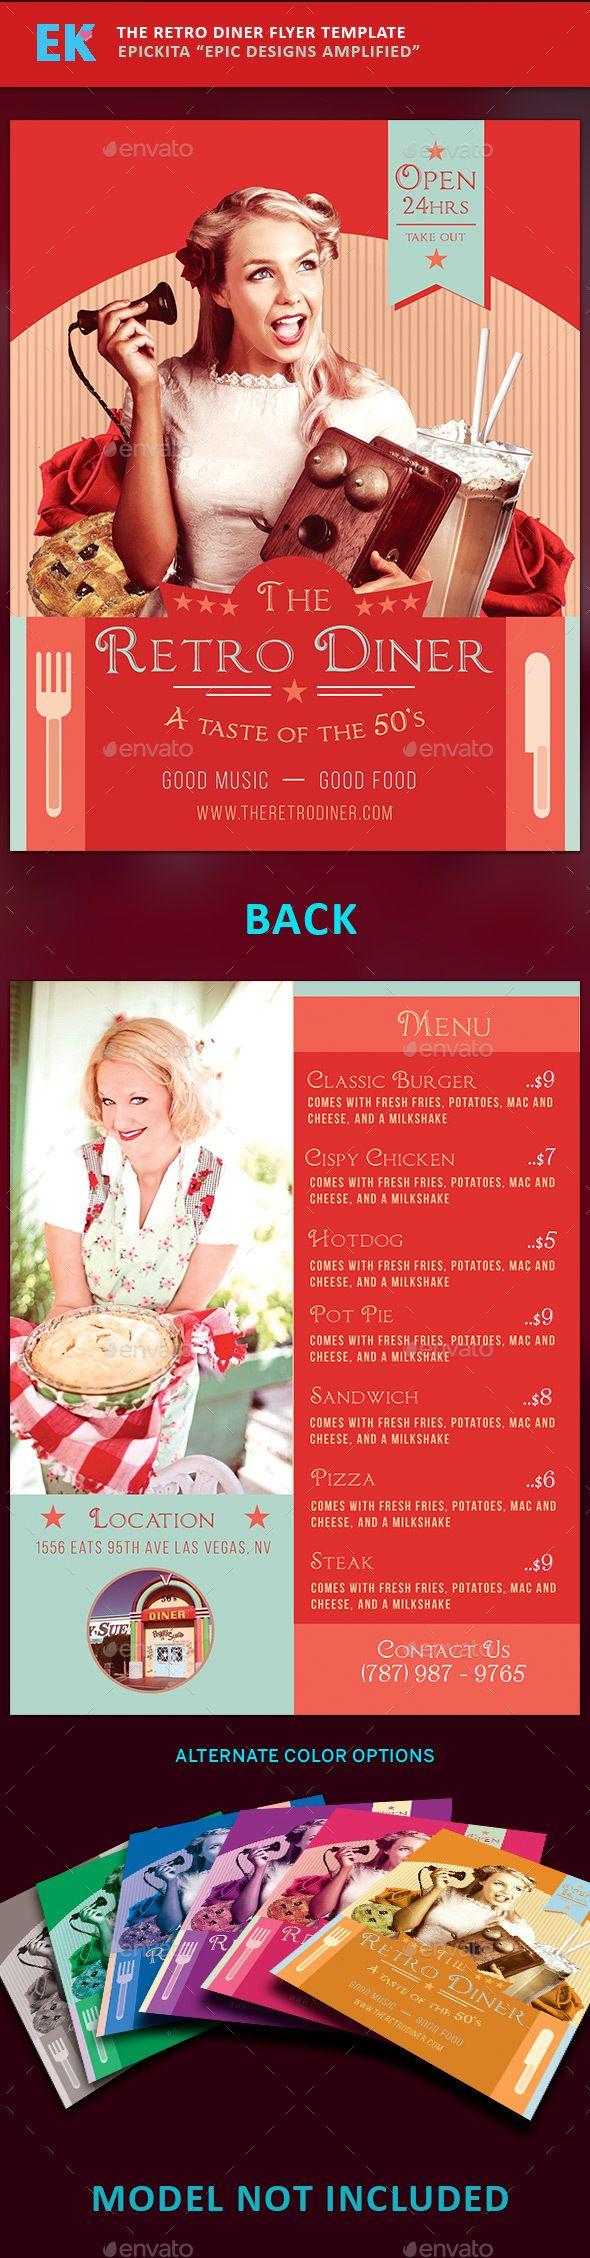 The Retro Diner Flyer Template  Flyer Template Diners And Template